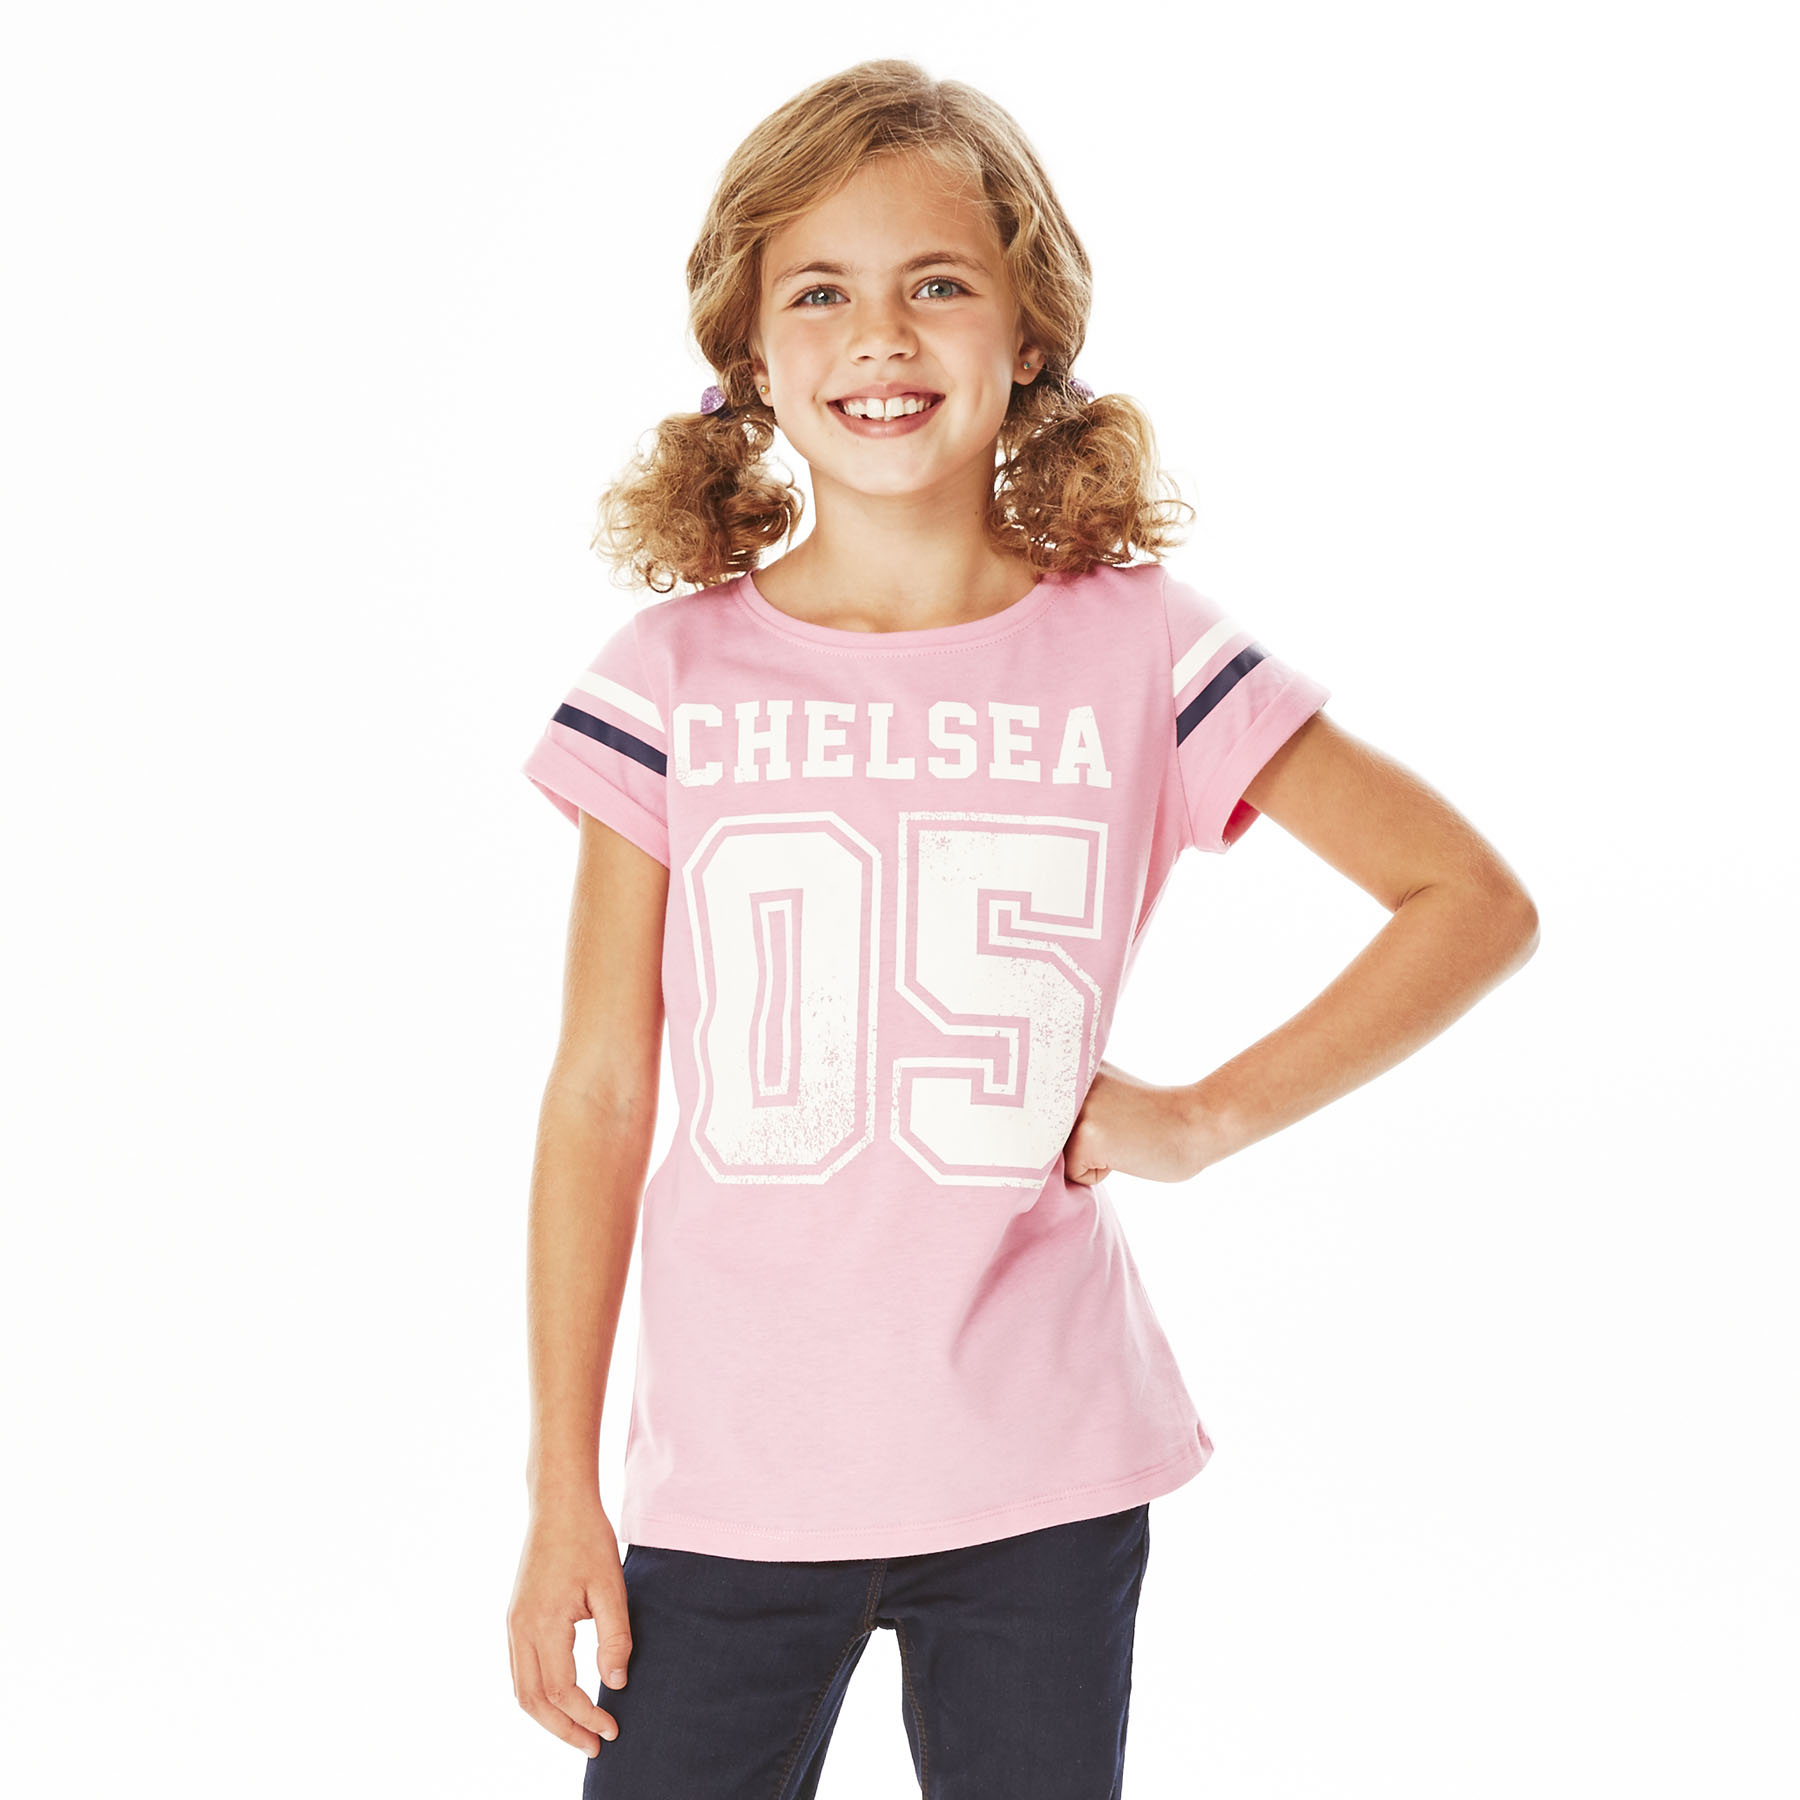 Chelsea Distressed T-Shirt - Sachet Pink - Girls